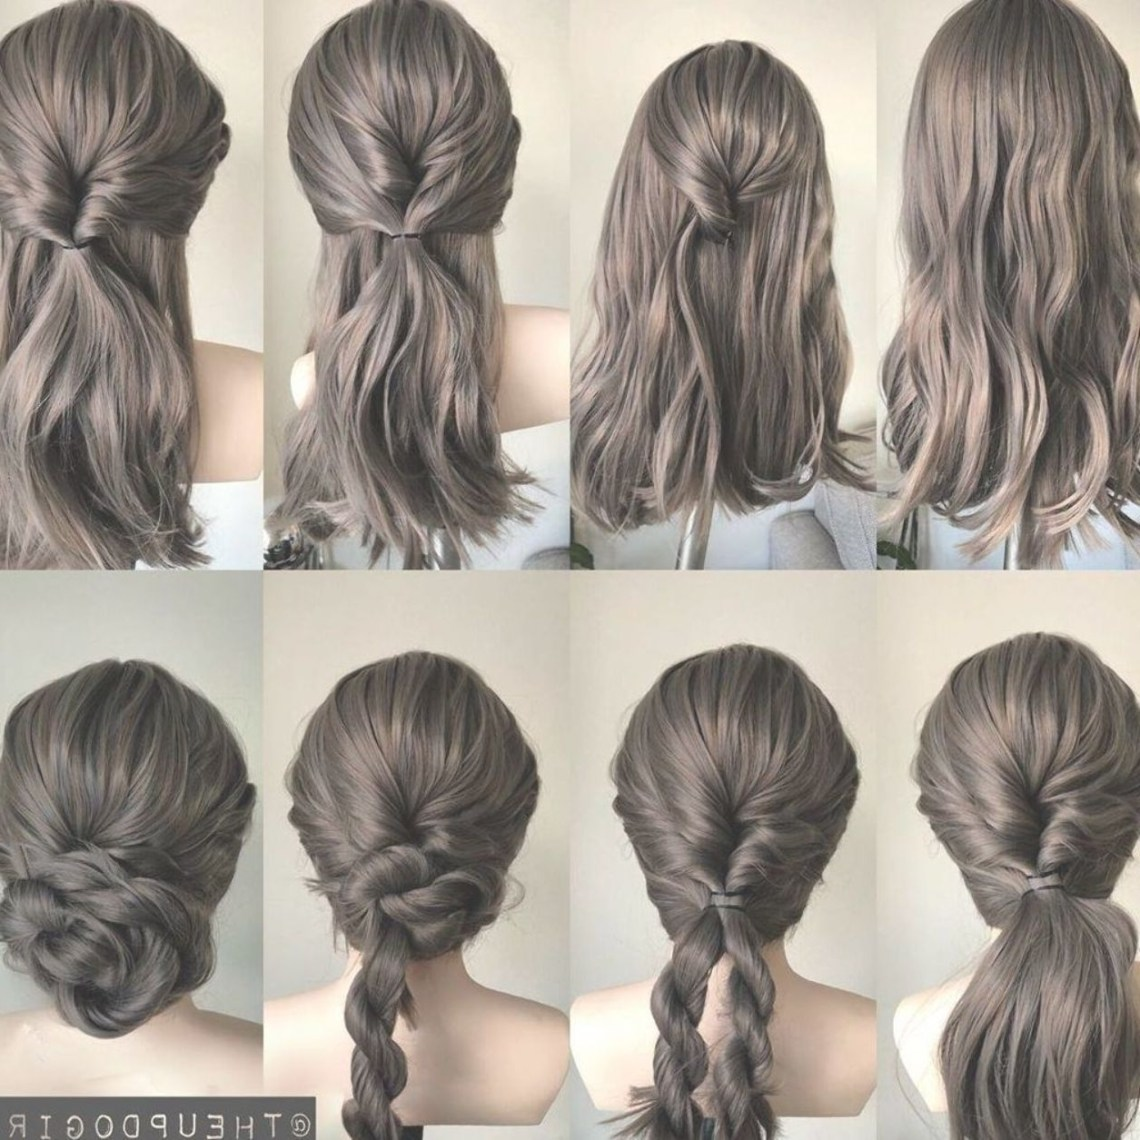 Gorgeous And Easy Homecoming Hairstyles Tutorial For Women 20+ Stylish Medium Hairstyles For Homecoming